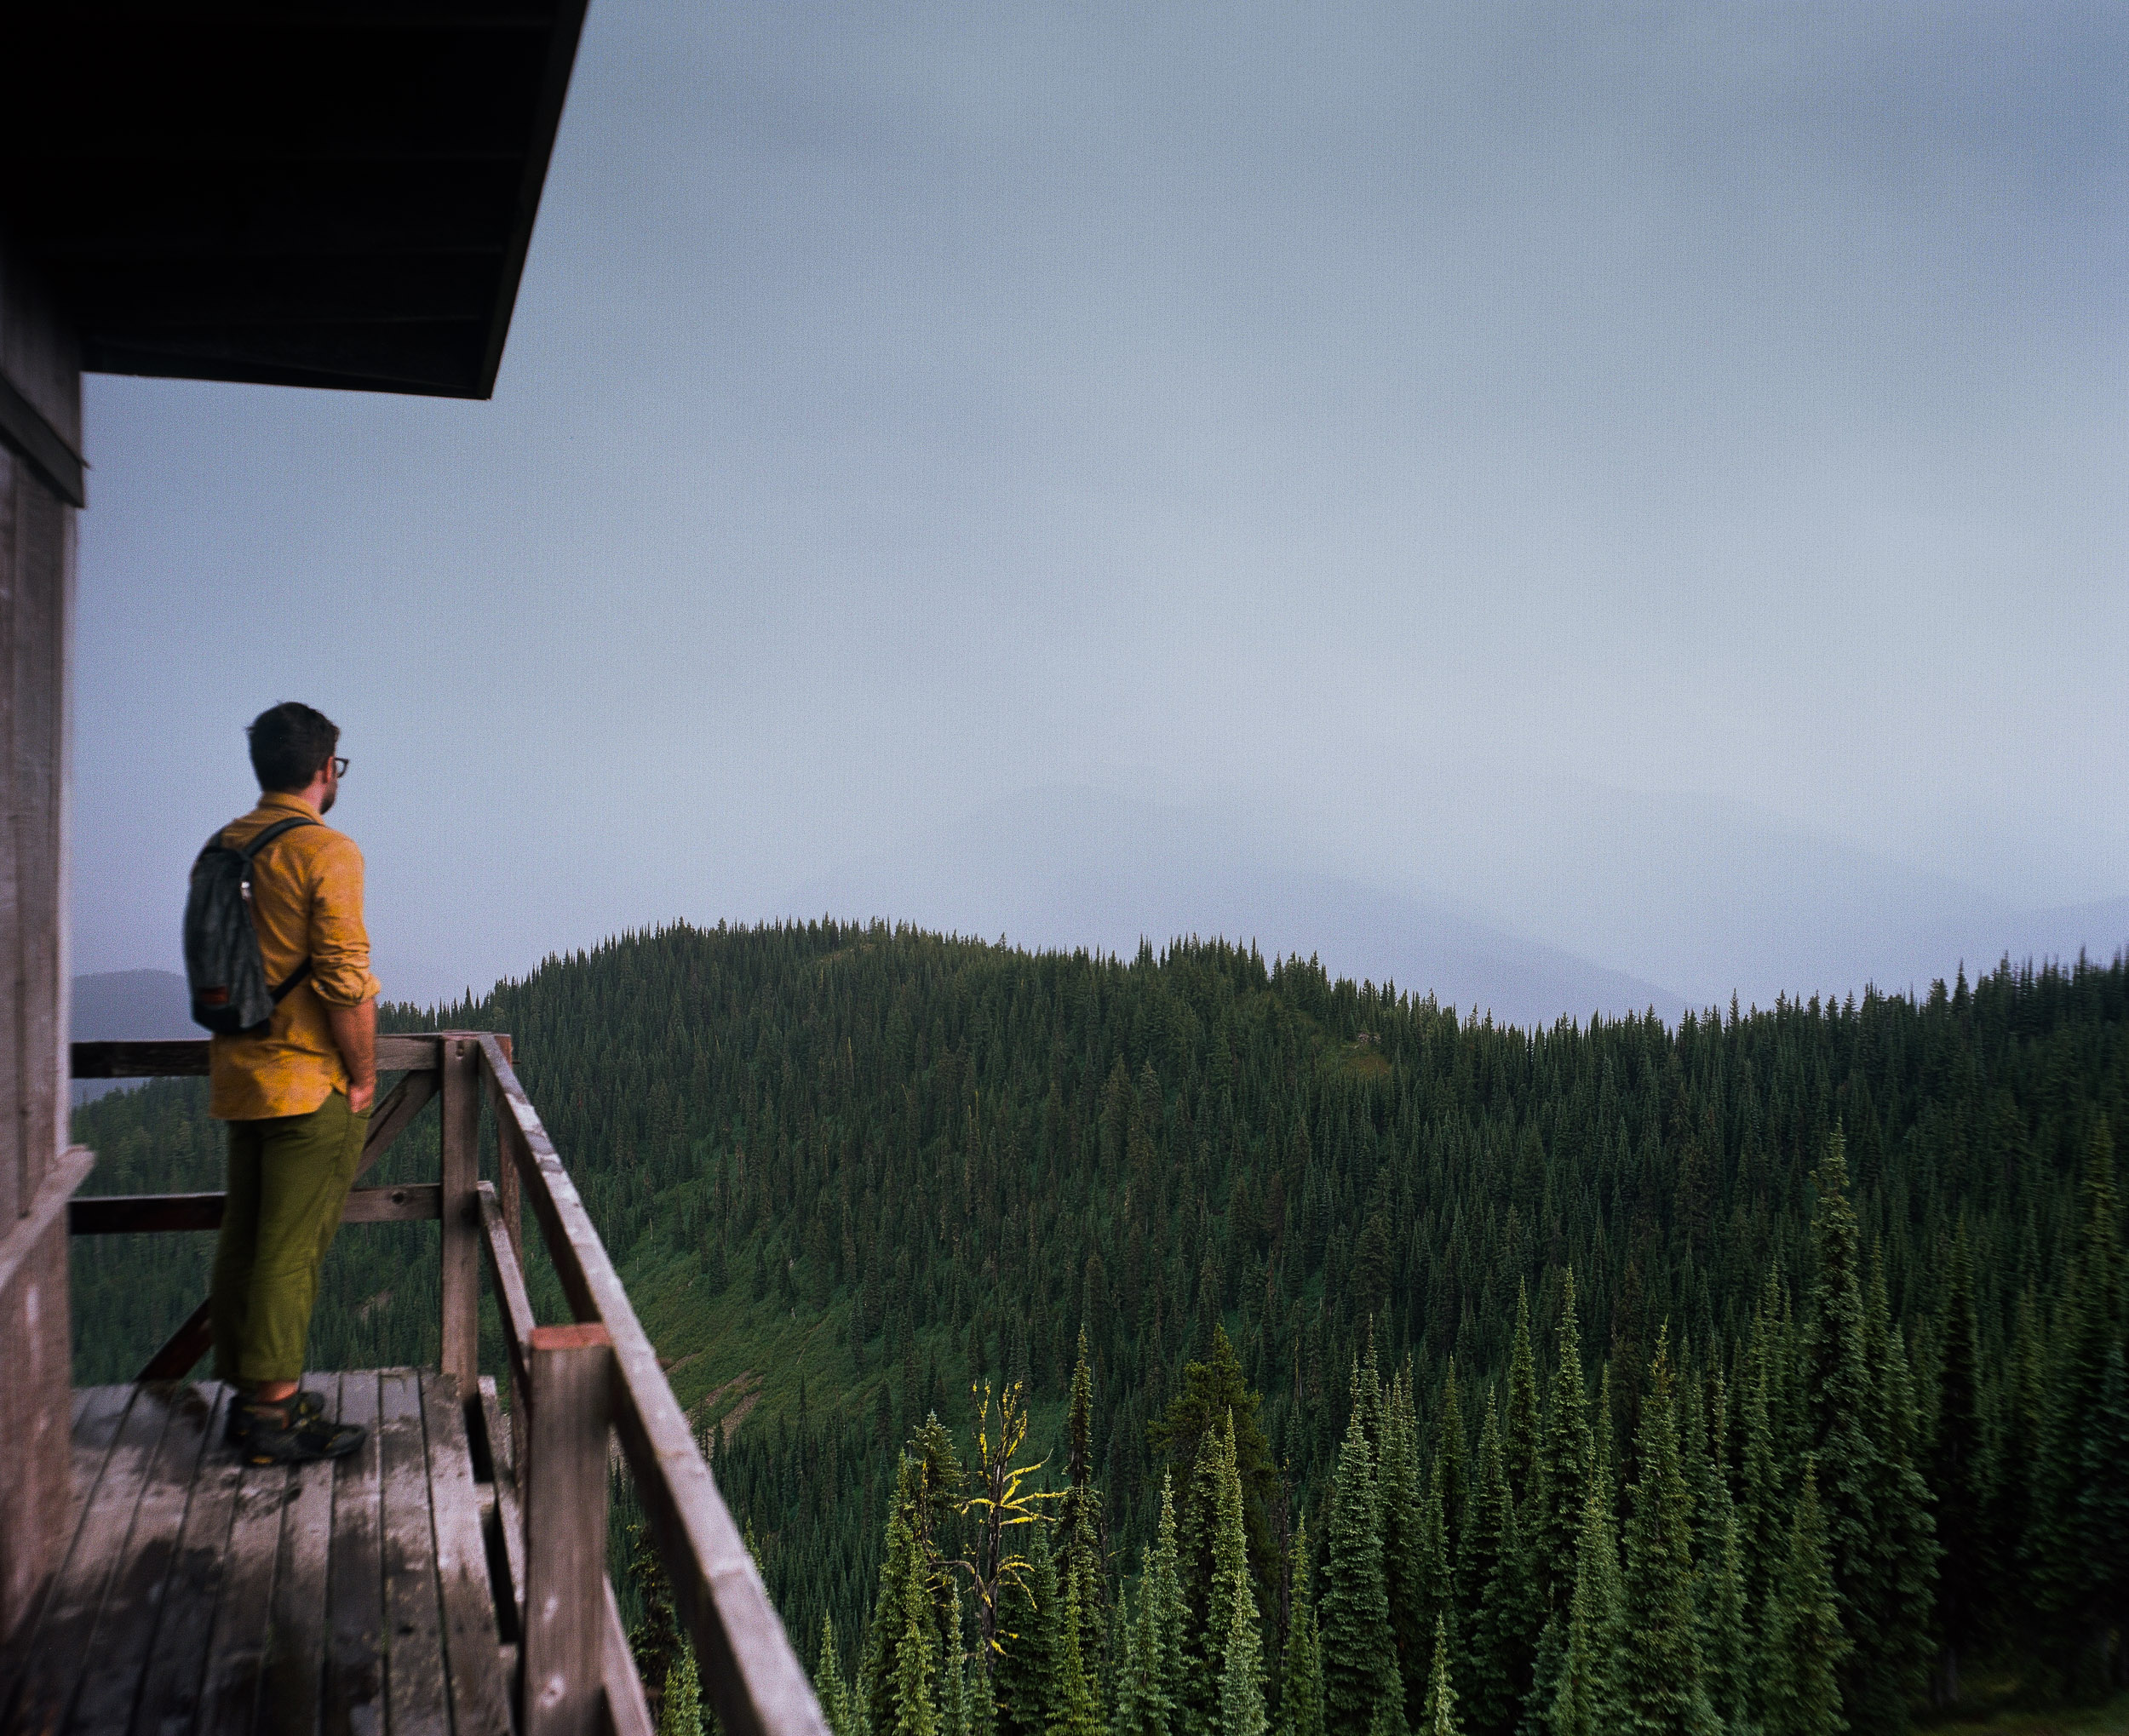 Hiker in Yellow shirt looking out over pine forest in Northern Montana